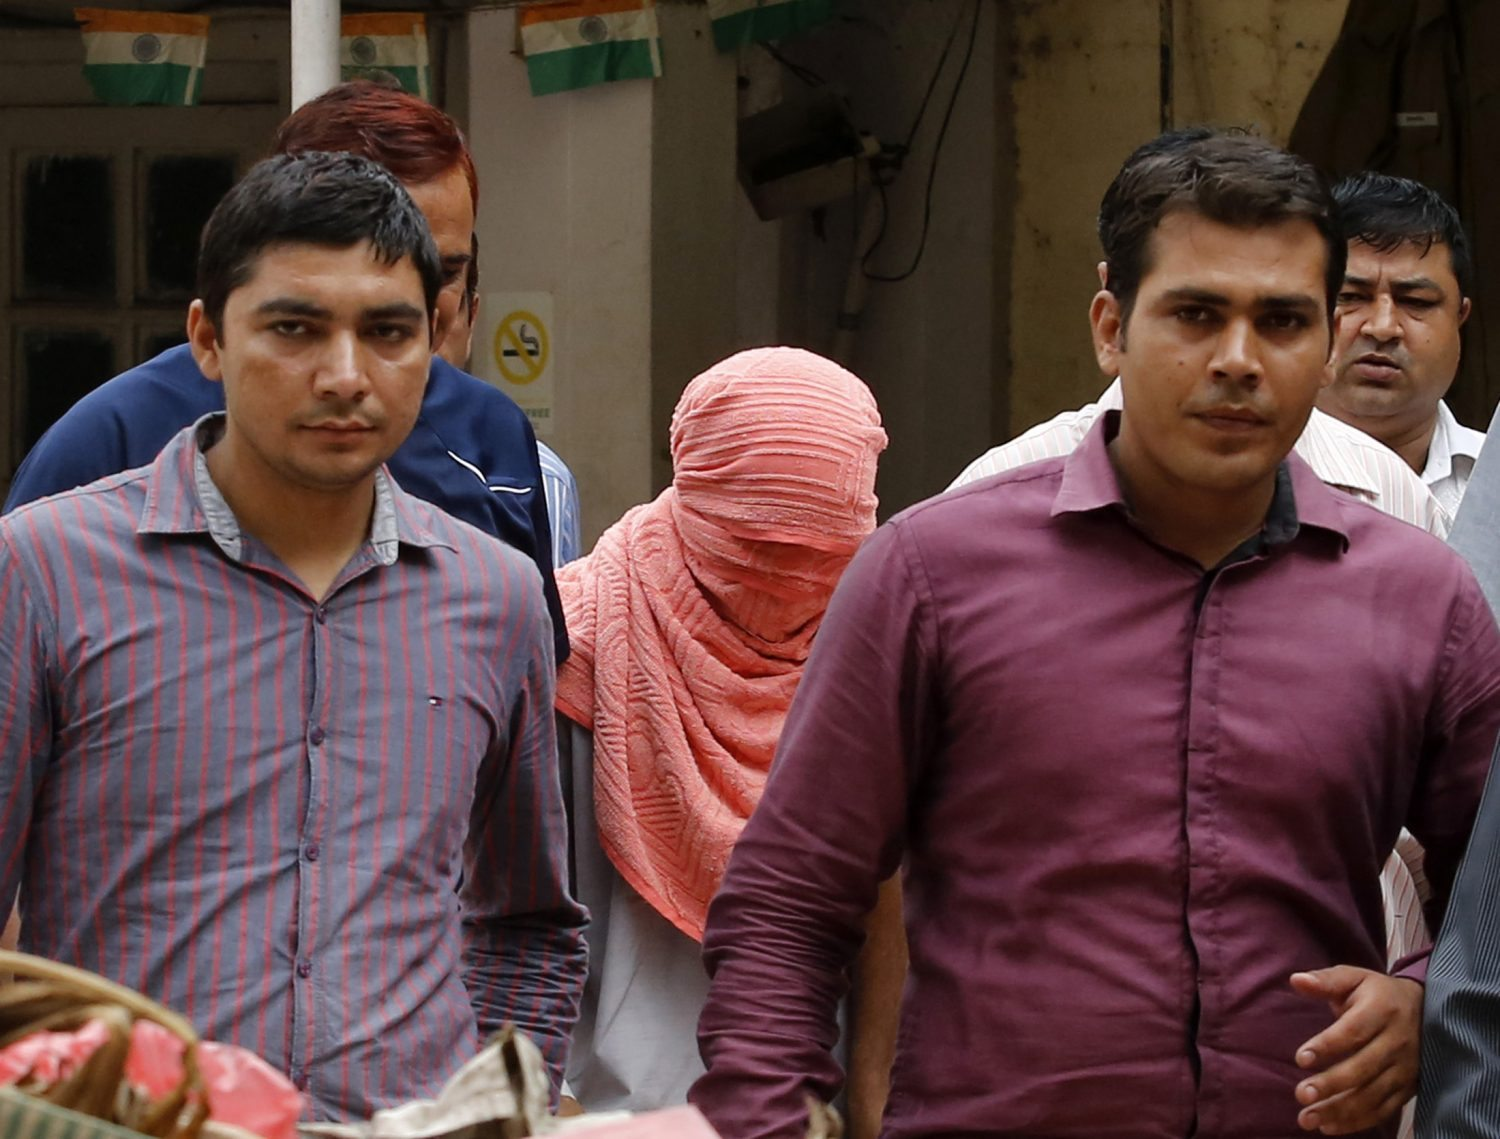 Plainclothes policemen escort an Indian teenager (head covered with towel) after he was sentenced at a juvenile court in New Delhi August 31, 2013. The Indian teenager was sentenced to three years in juvenile detention on Saturday for the December gang rape of a trainee physiotherapist, the first verdict in a case that sparked debate over whether India was too soft on young offenders. REUTERS/Anindito Mukherjee (INDIA - Tags: CRIME LAW TPX IMAGES OF THE DAY) - RTX132GG